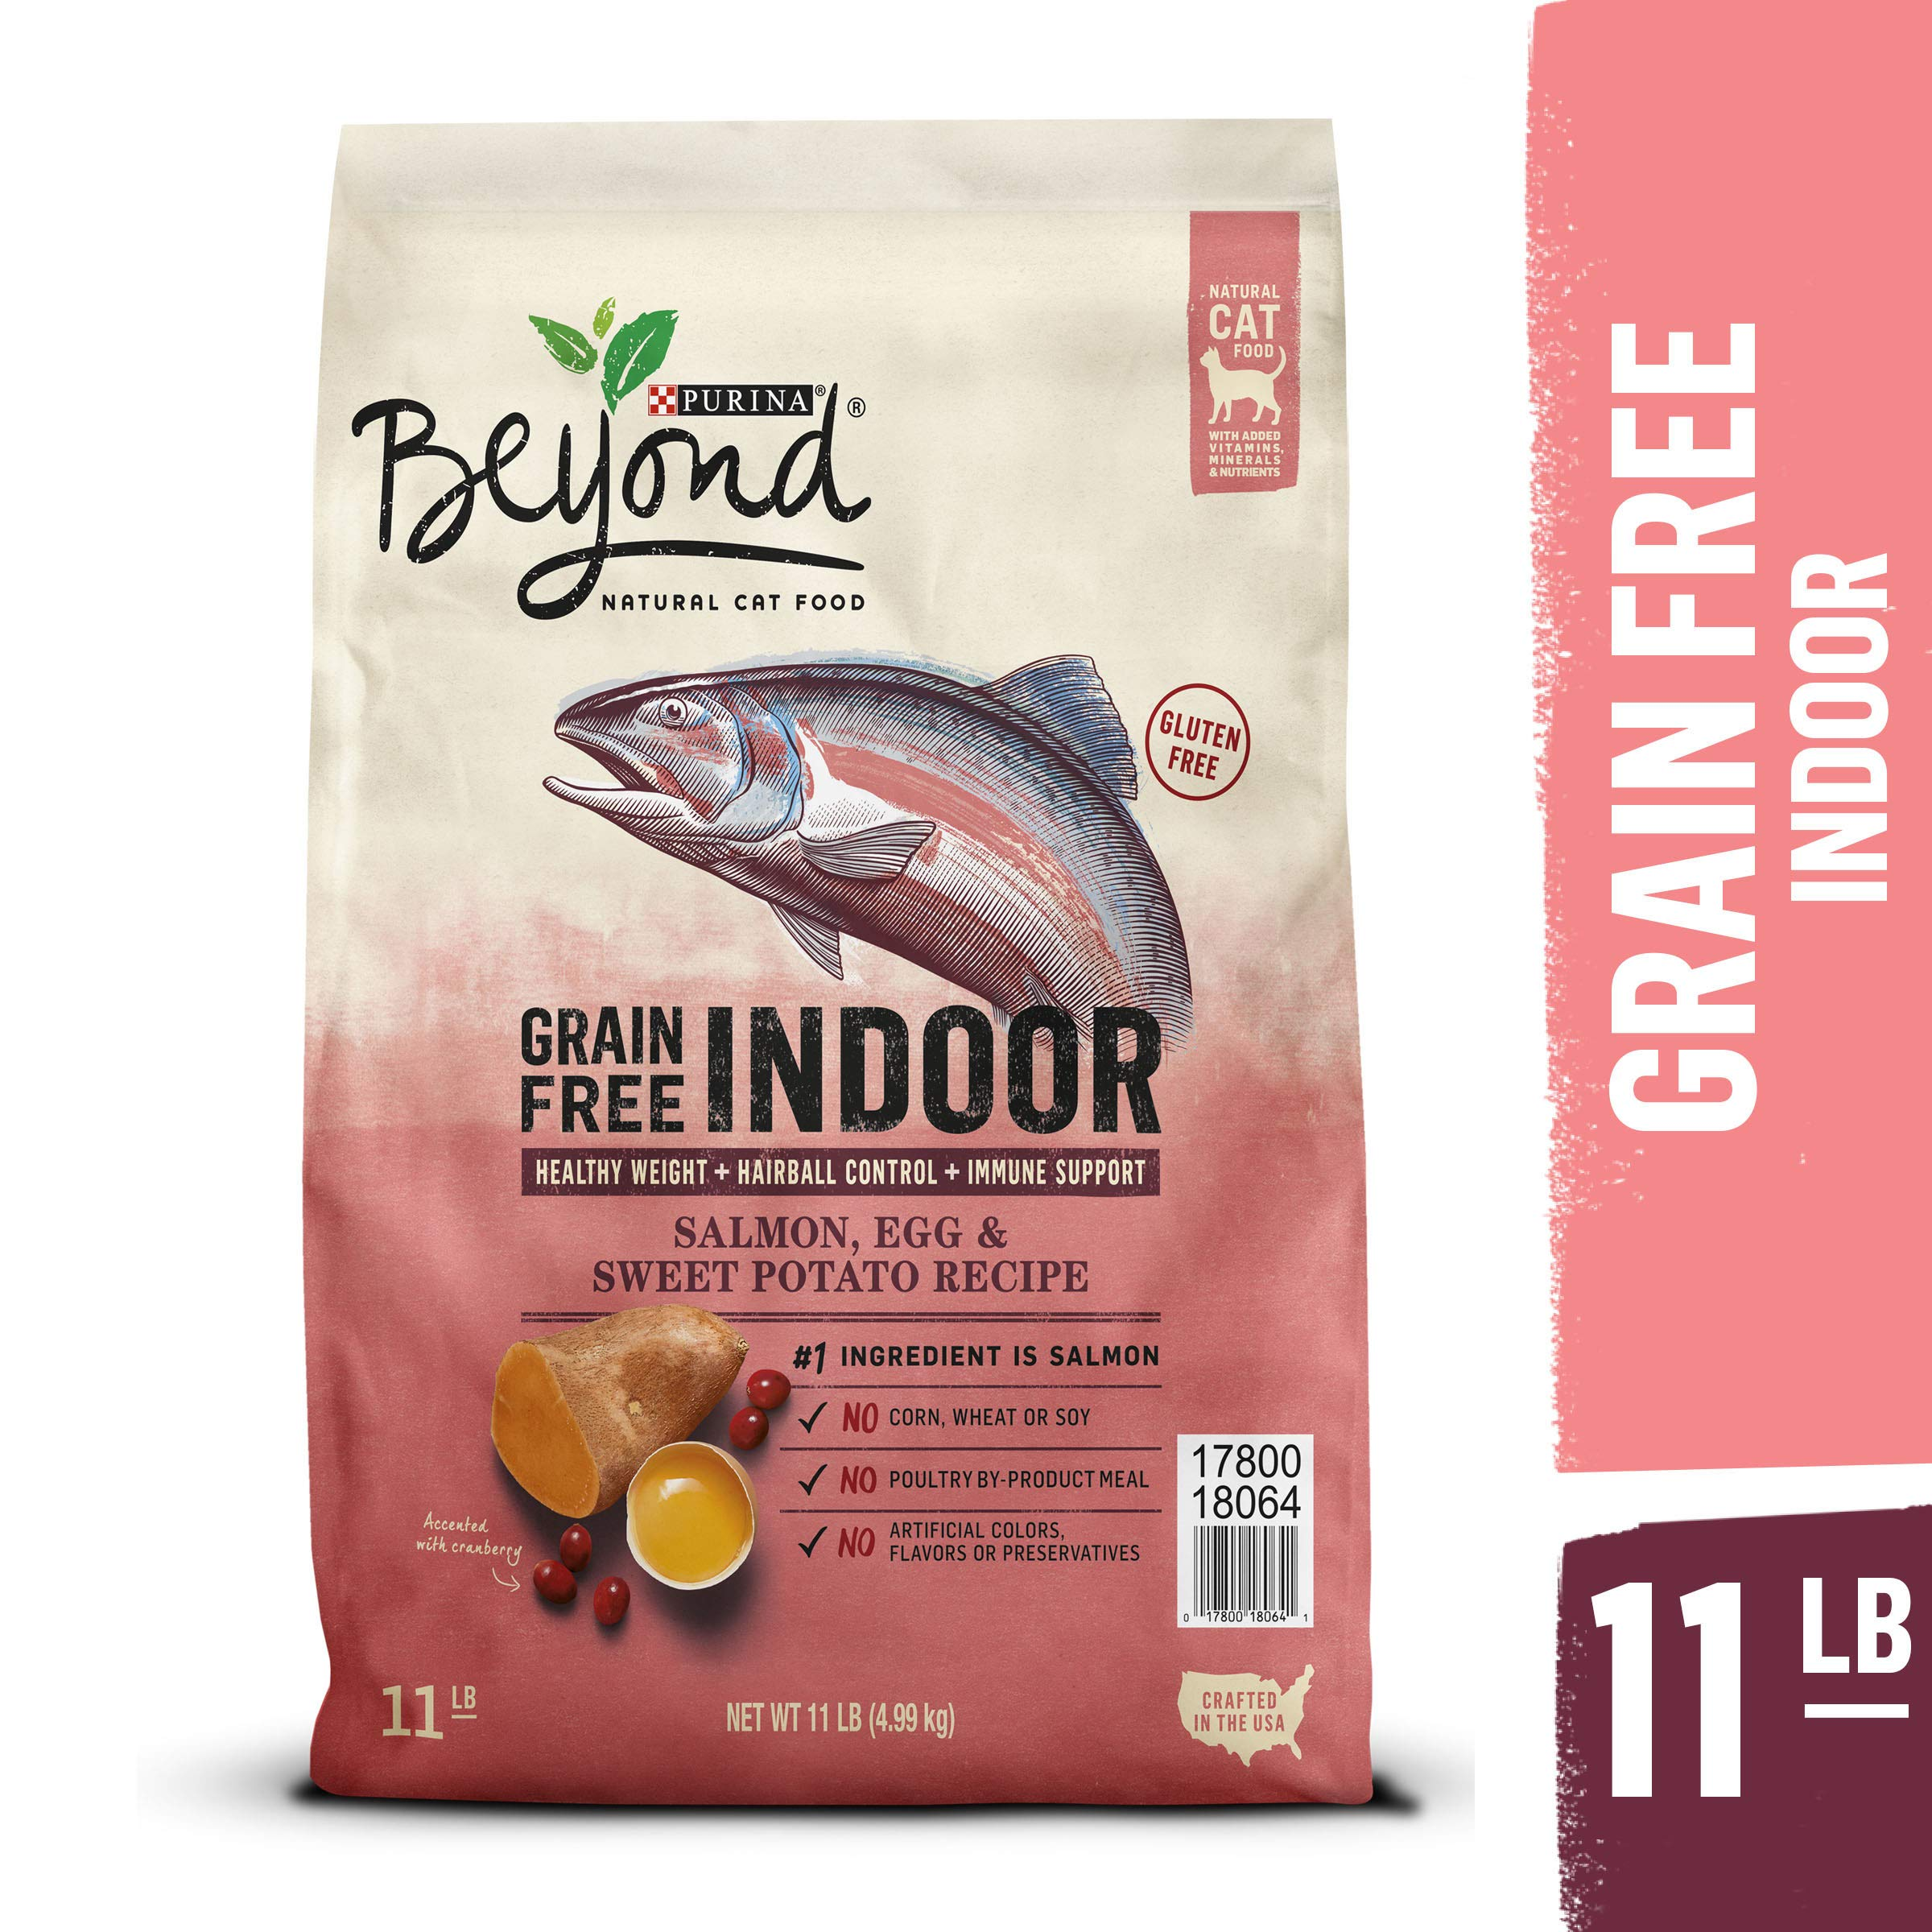 Purina Beyond Indoor, Grain Free, Natural Dry Cat Food, Grain Free Salmon, Egg & Sweet Potato Recipe - 11 lb. Bag by Purina Beyond